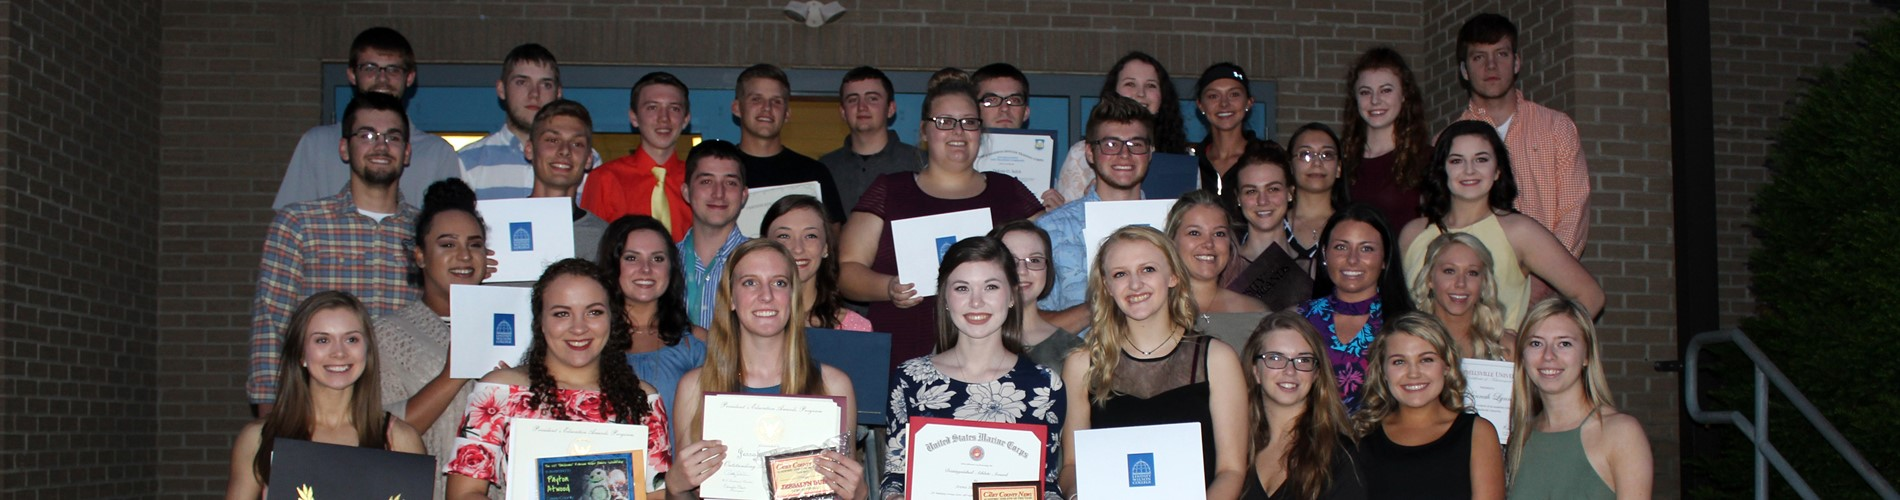 The Senior Awards and Scholarships Program was held on May 9, 2017.  Well done, Class of 2017!!